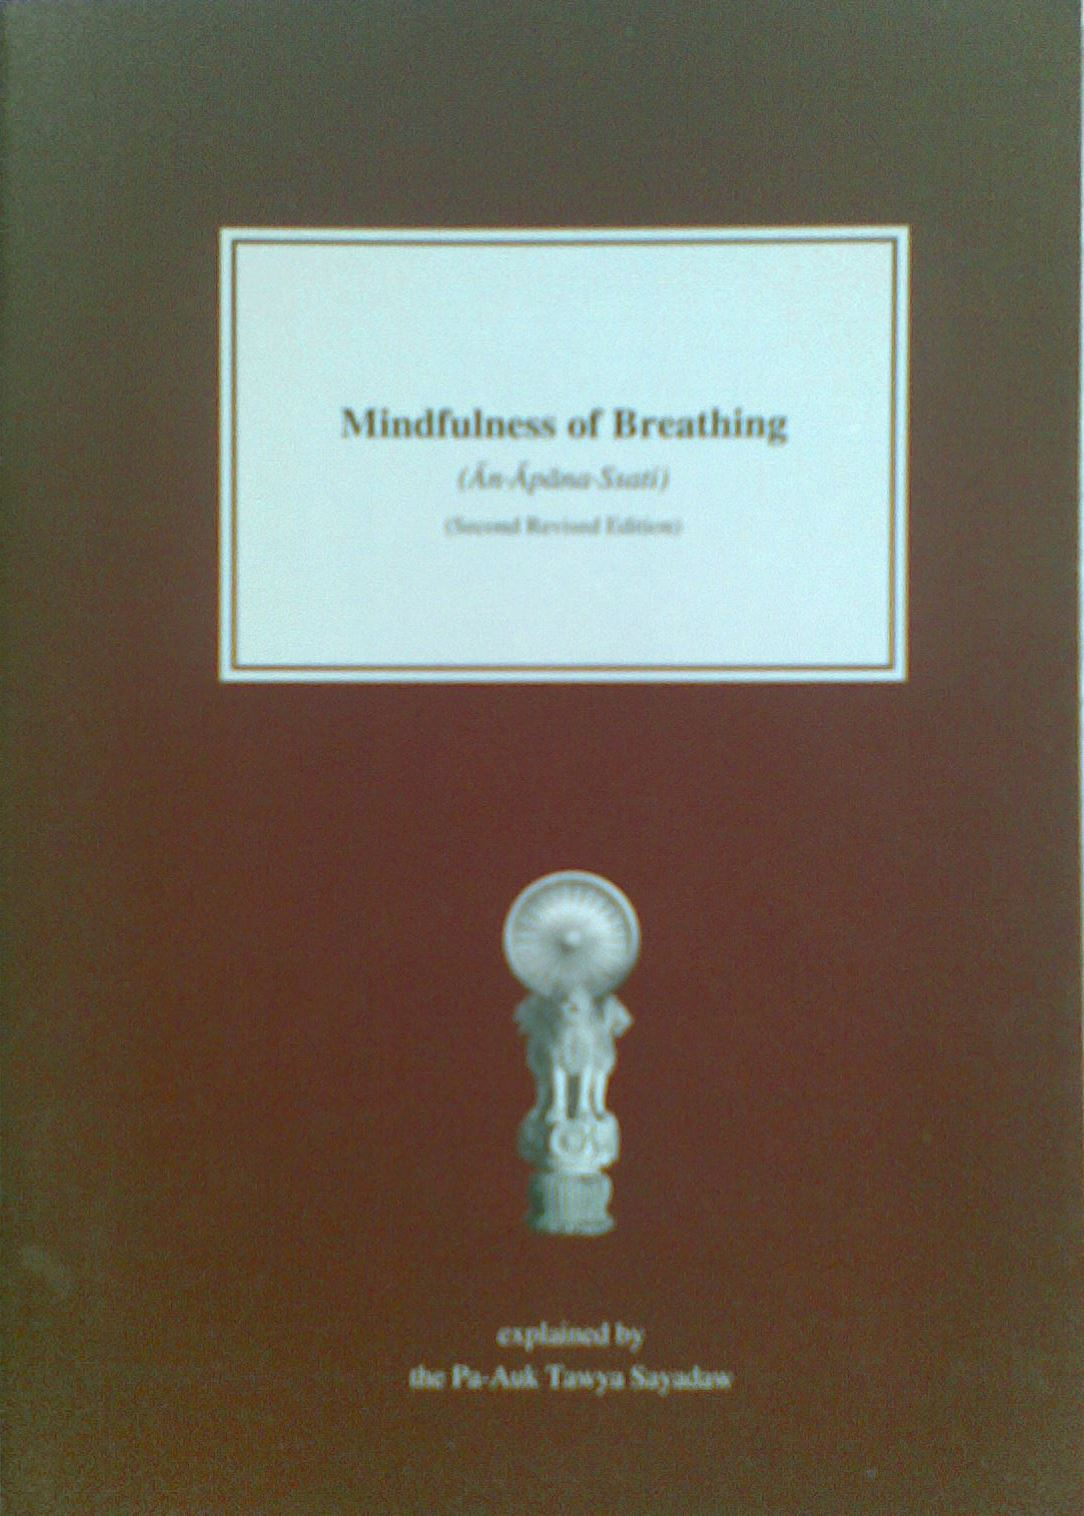 Mindfulness of Breathing (ānāpānasati)